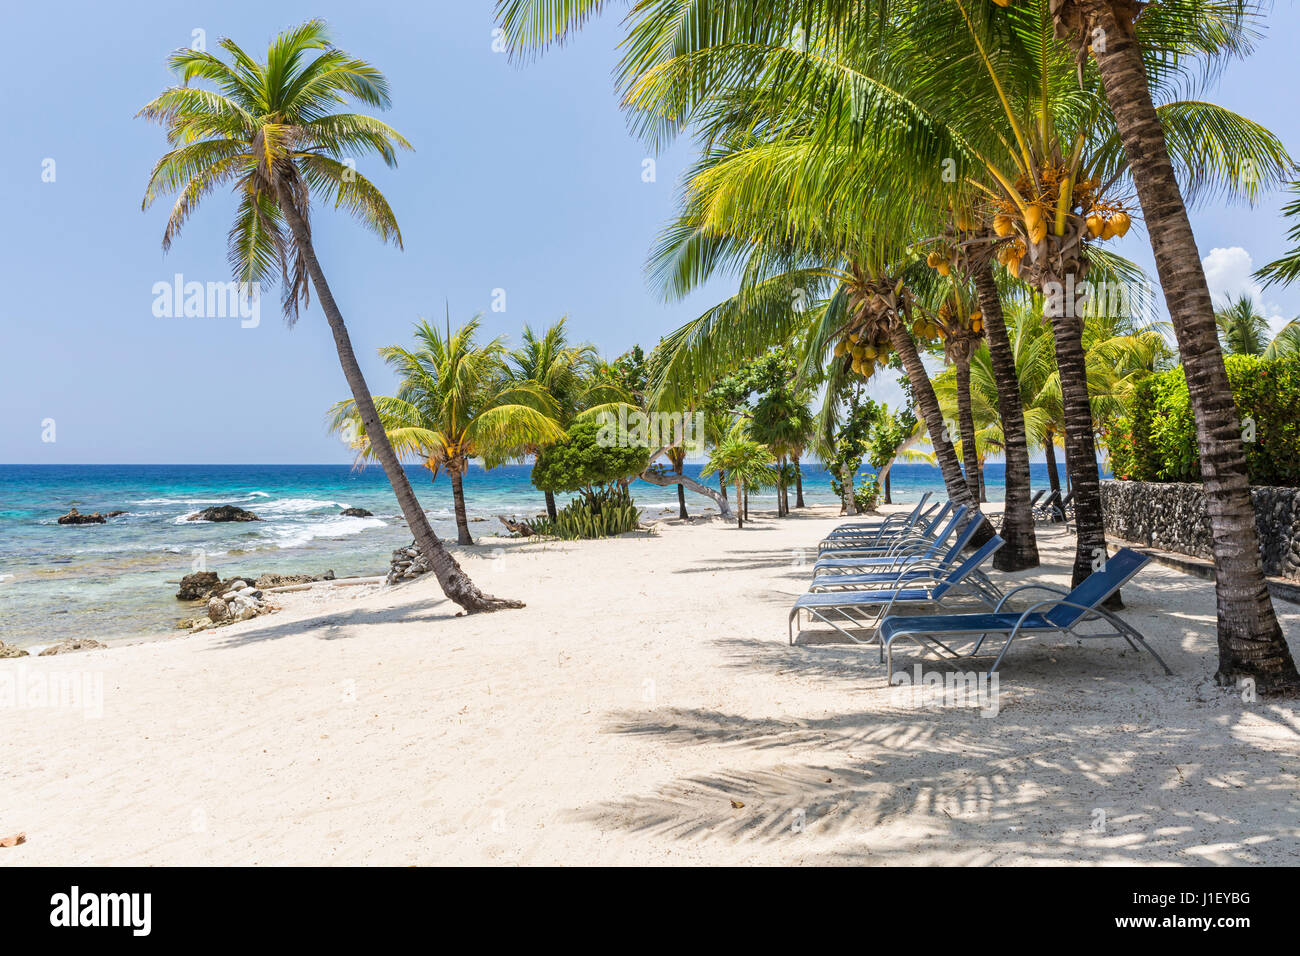 Coconut palm trees and beach chairs line the beautiful sandy beach at Lighthouse Point near the Meridian Resort - Stock Image